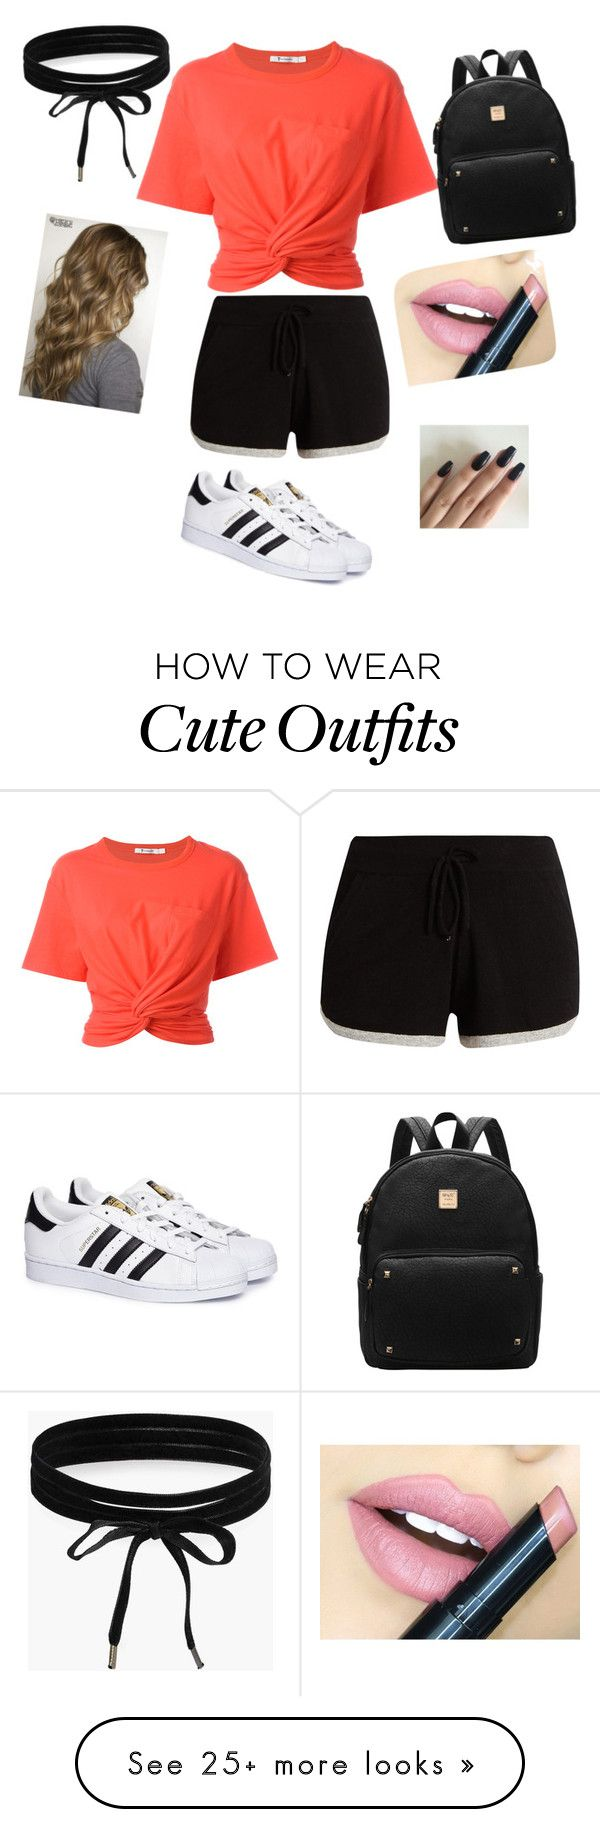 """Really Cute outfit=COMPLIMENT"" by jessicamondragon14 on Polyvore featuring T By Alexander Wang, Pepper & Mayne, adidas, Boohoo and Fiebiger"